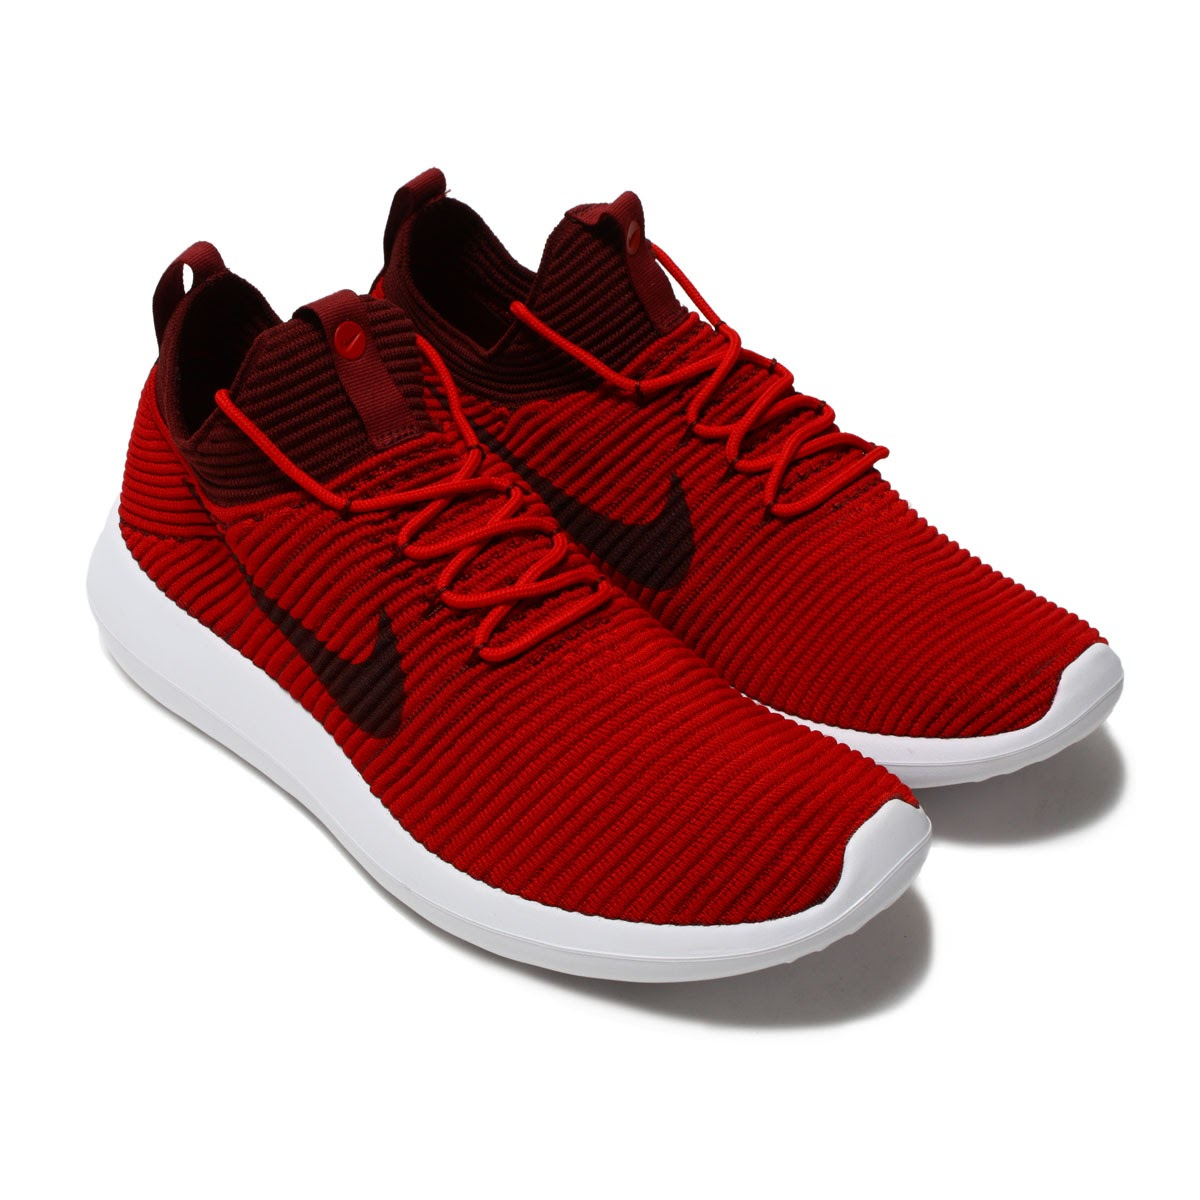 NIKE ROSHE TWO FLYKNIT V2 (ナイキローシ 2 fly knit V2) UNIVERSITY RED DARK TEAM  RED-WHITE 17FA-I 1e8157209c9a